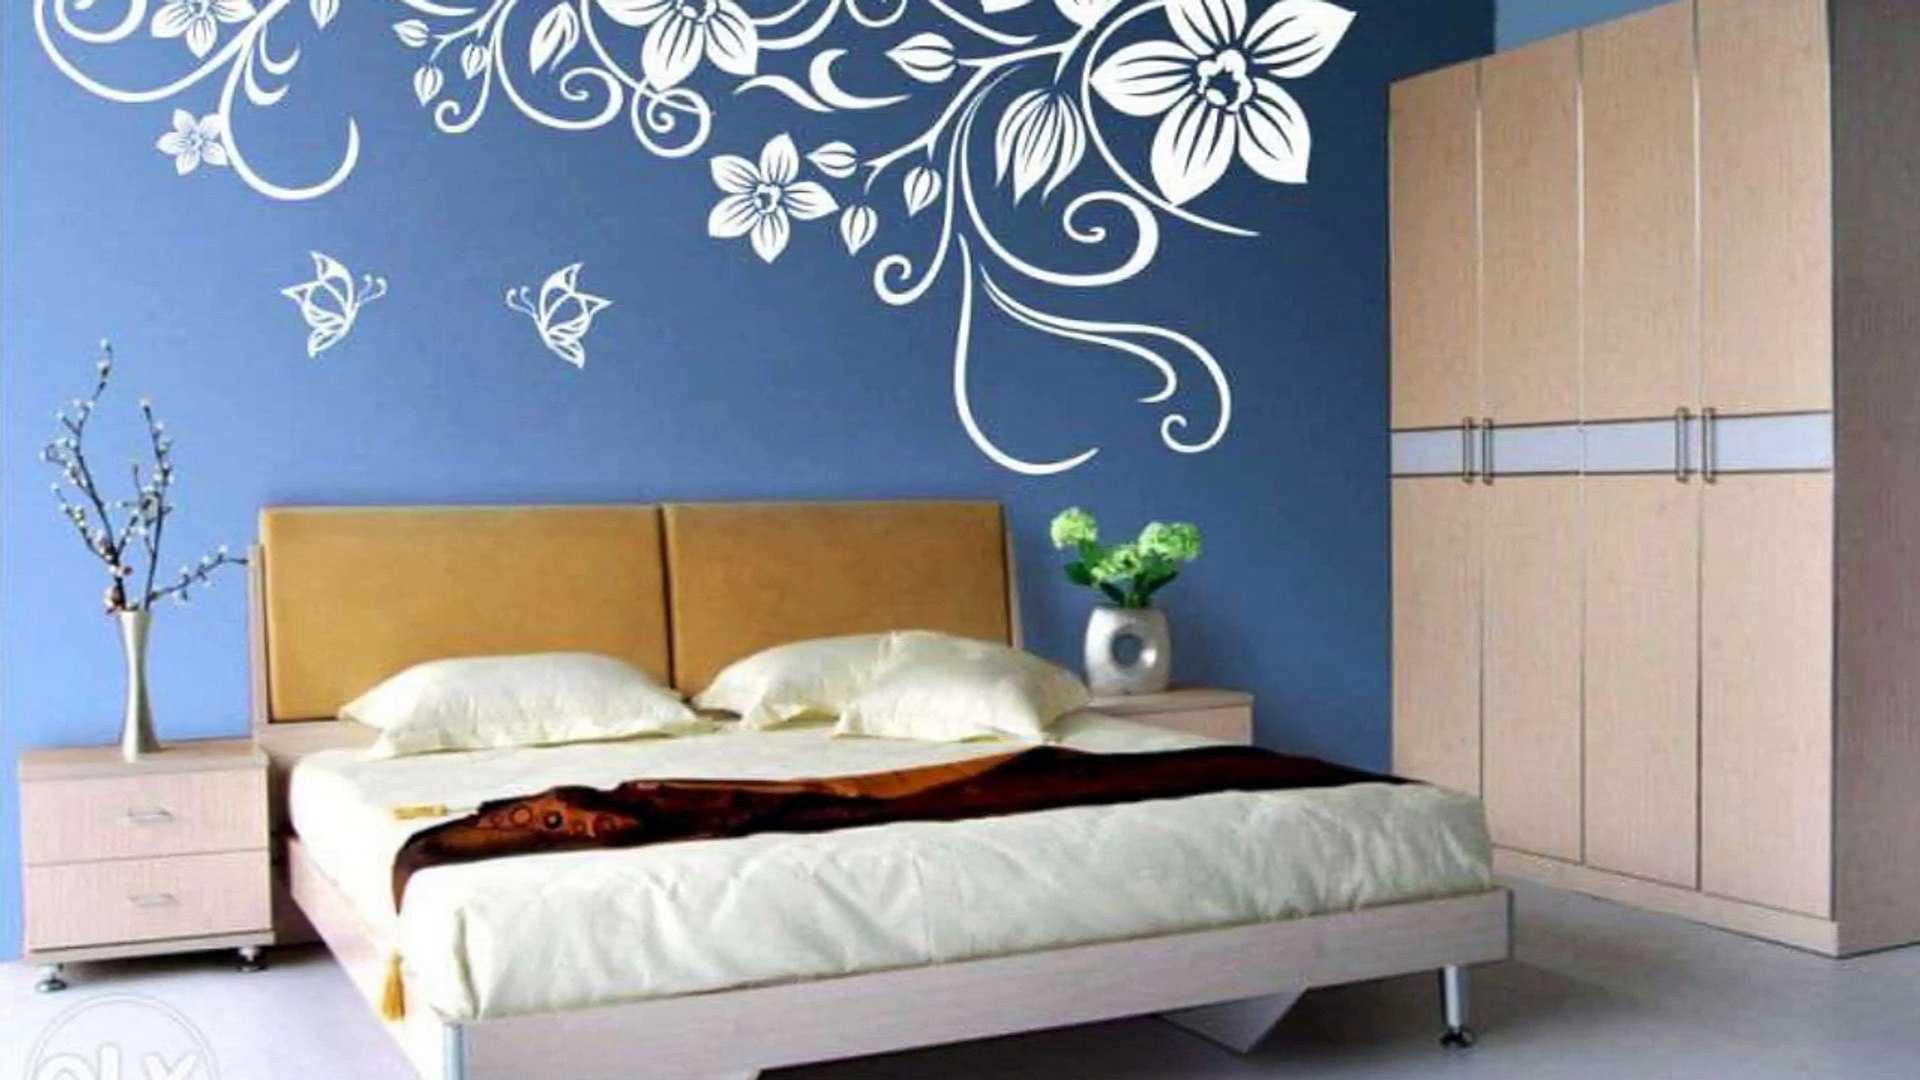 Wall Painting Designs For Bedroom , HD Wallpaper & Backgrounds